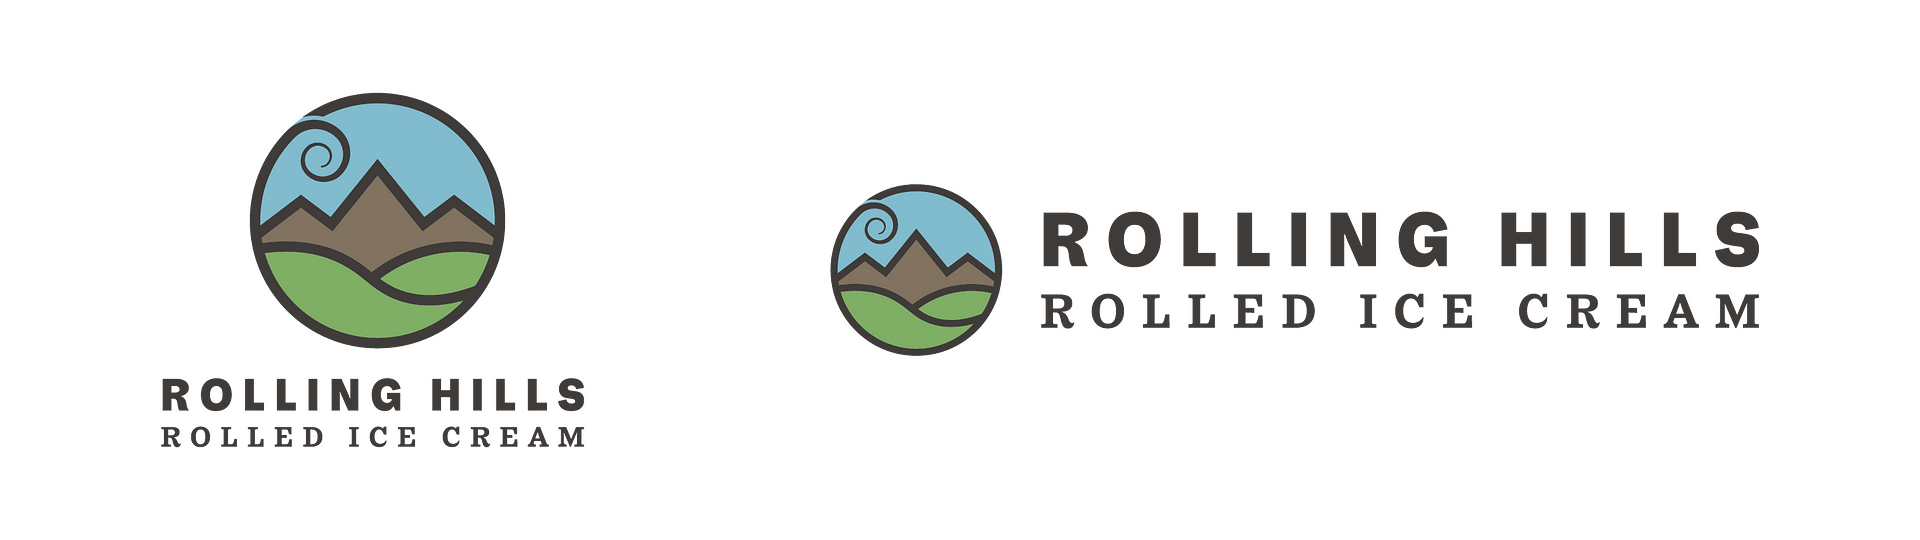 Rolling Hills Rolled Ice Cream business logo and landscape logo